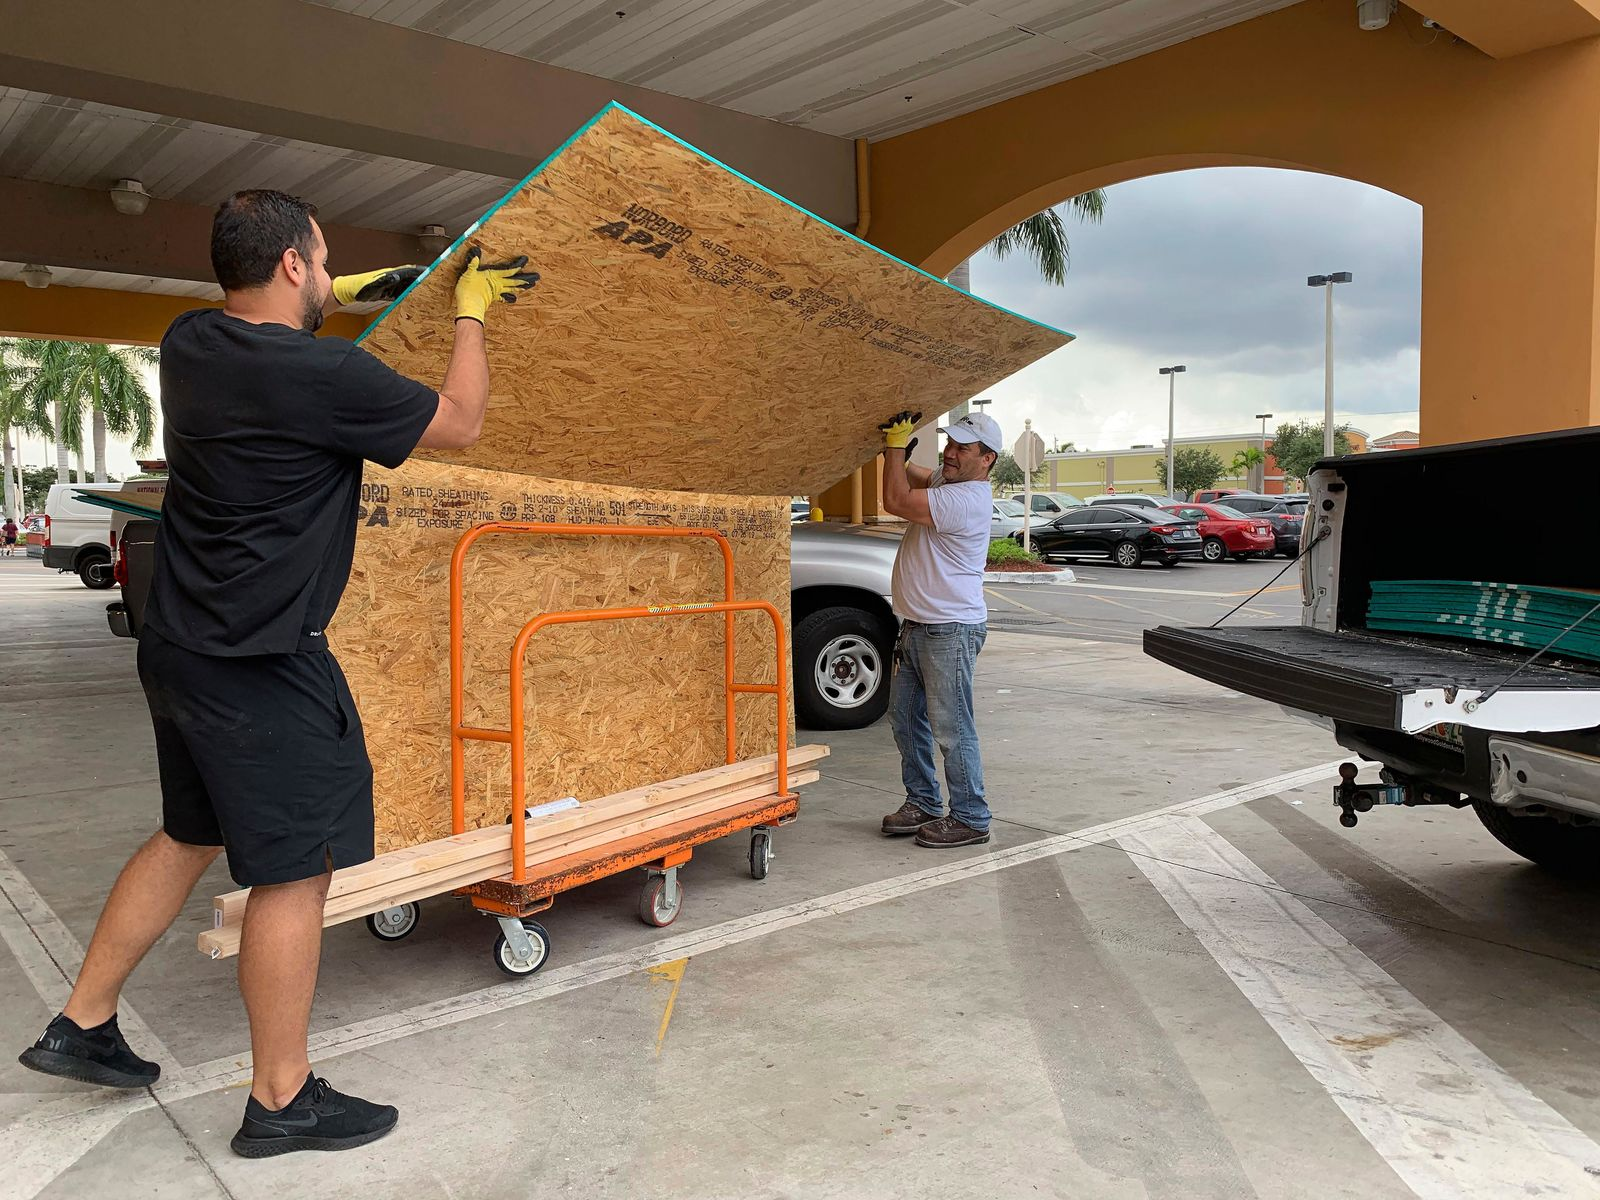 Shoppers load their truck with supplies to prepare ahead of Hurricane Dorian at The Home Depot on Thursday, Aug. 29, 2019, in Pembroke Pines, Fla. (AP Photo/Brynn Anderson)